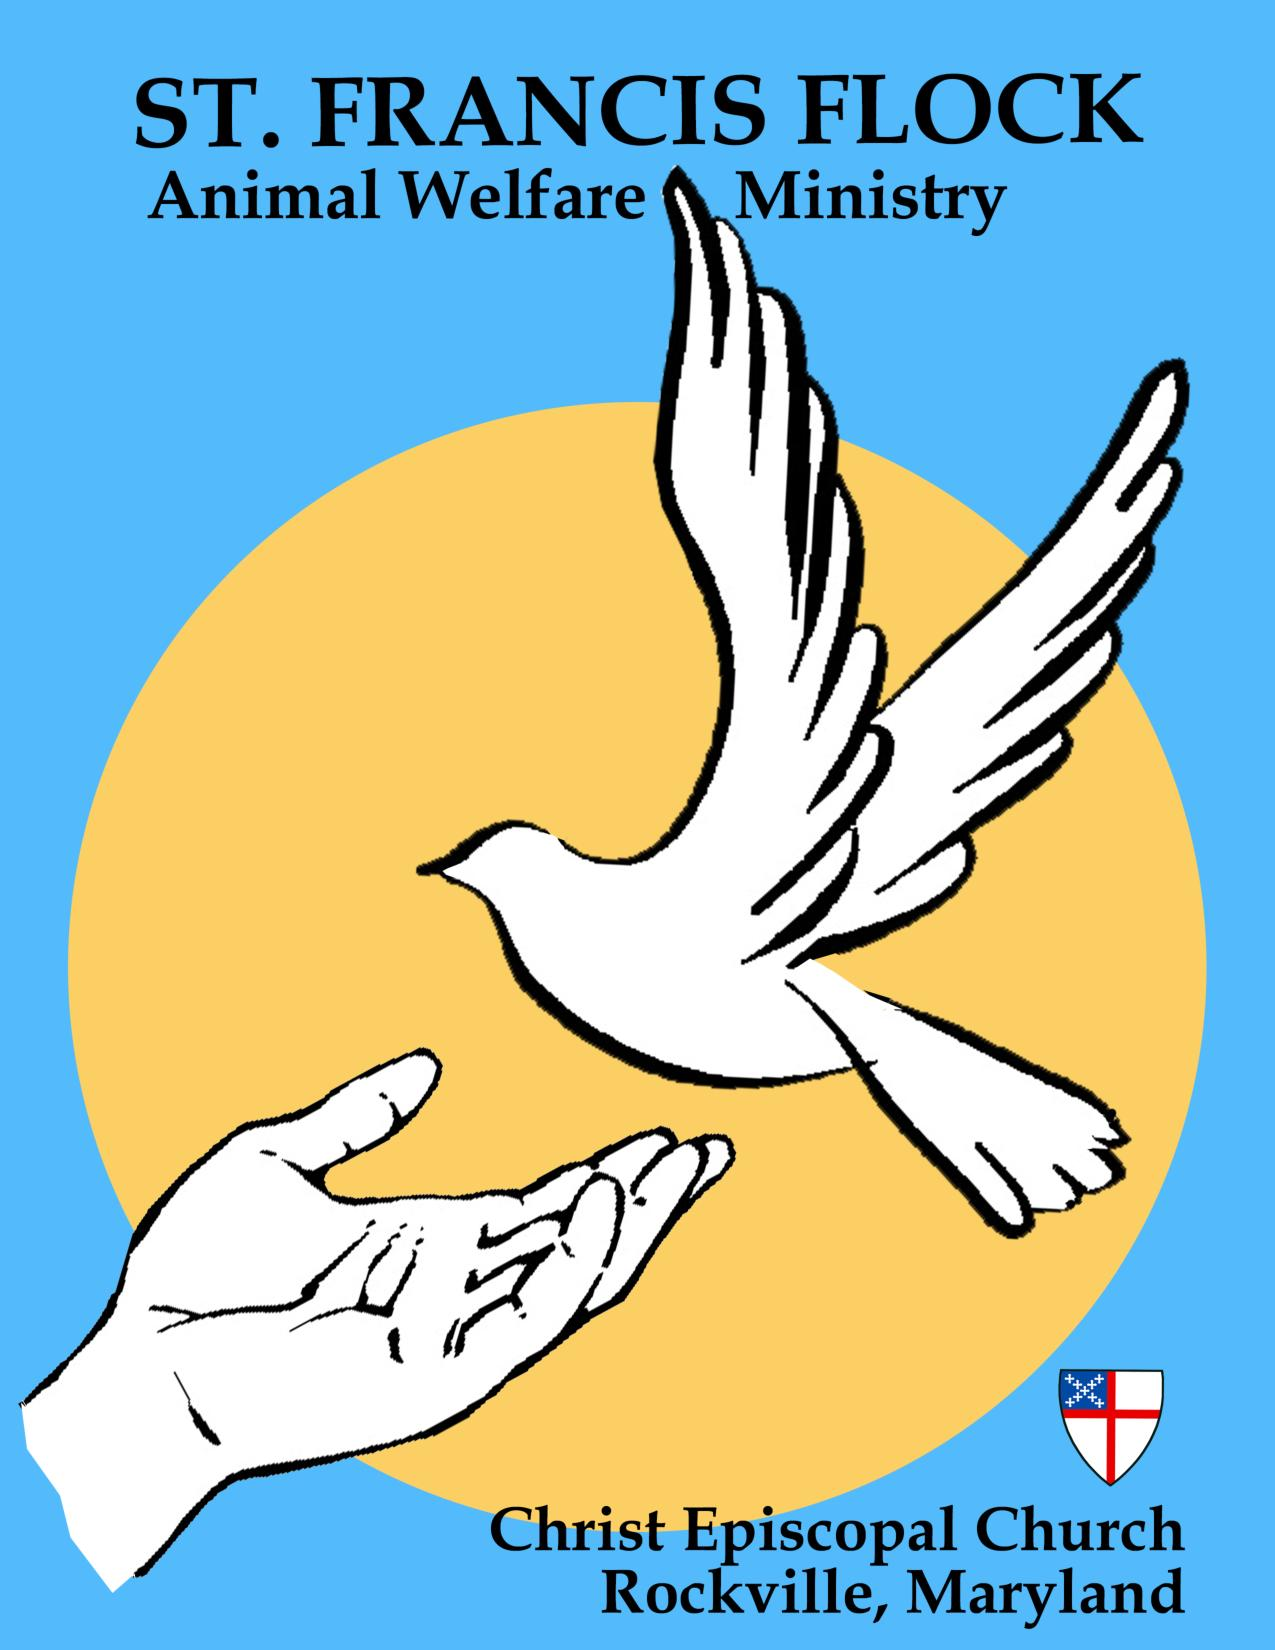 St. Francis Flock Animal Welfare Min